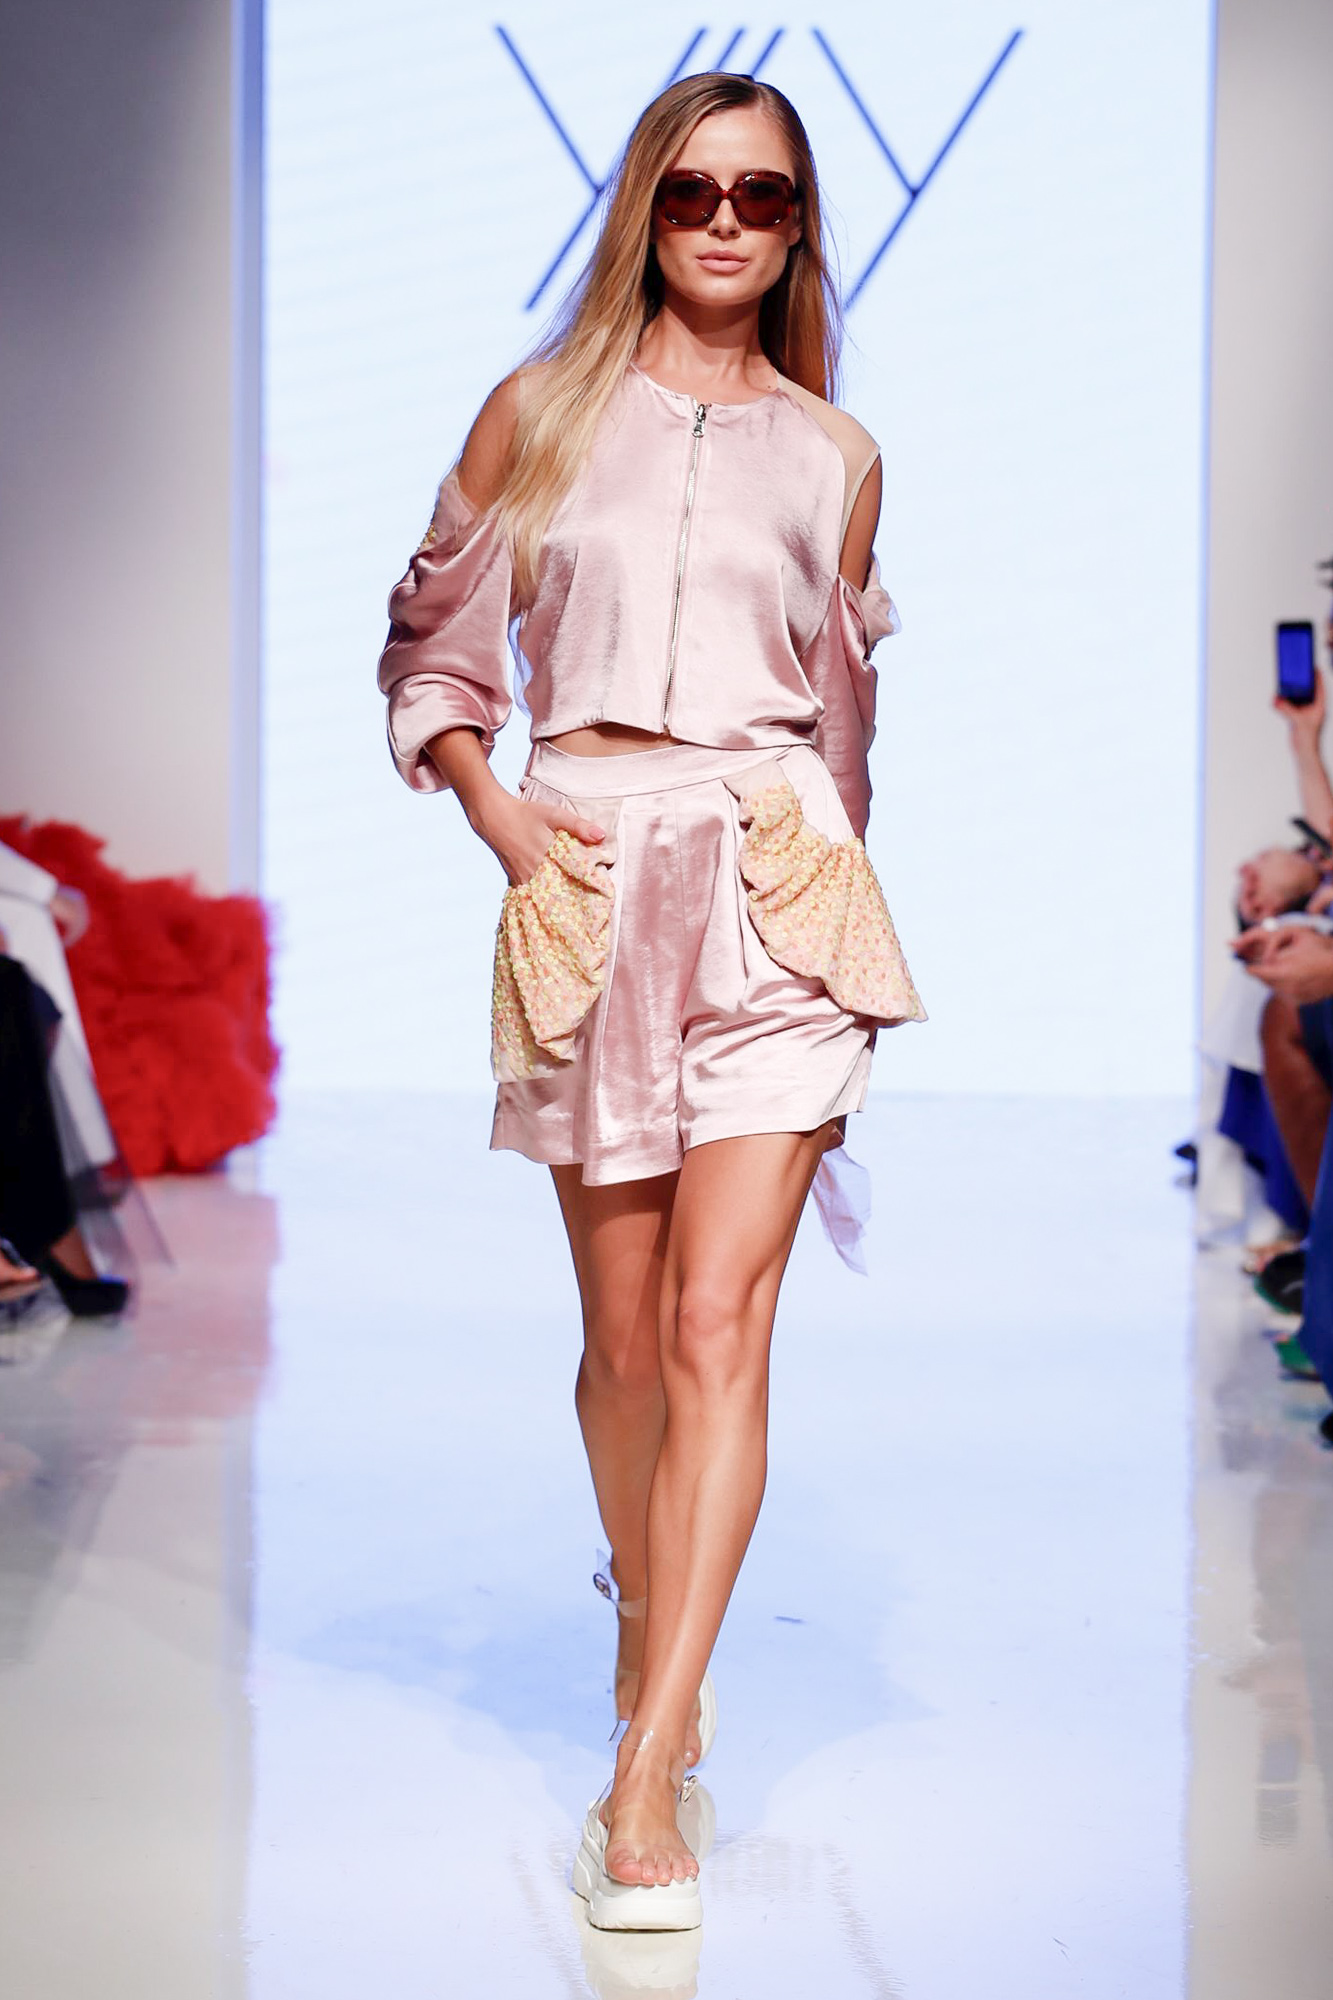 YLY-Studio-Arab-Fashion-Week-SS20-Dubai-5795